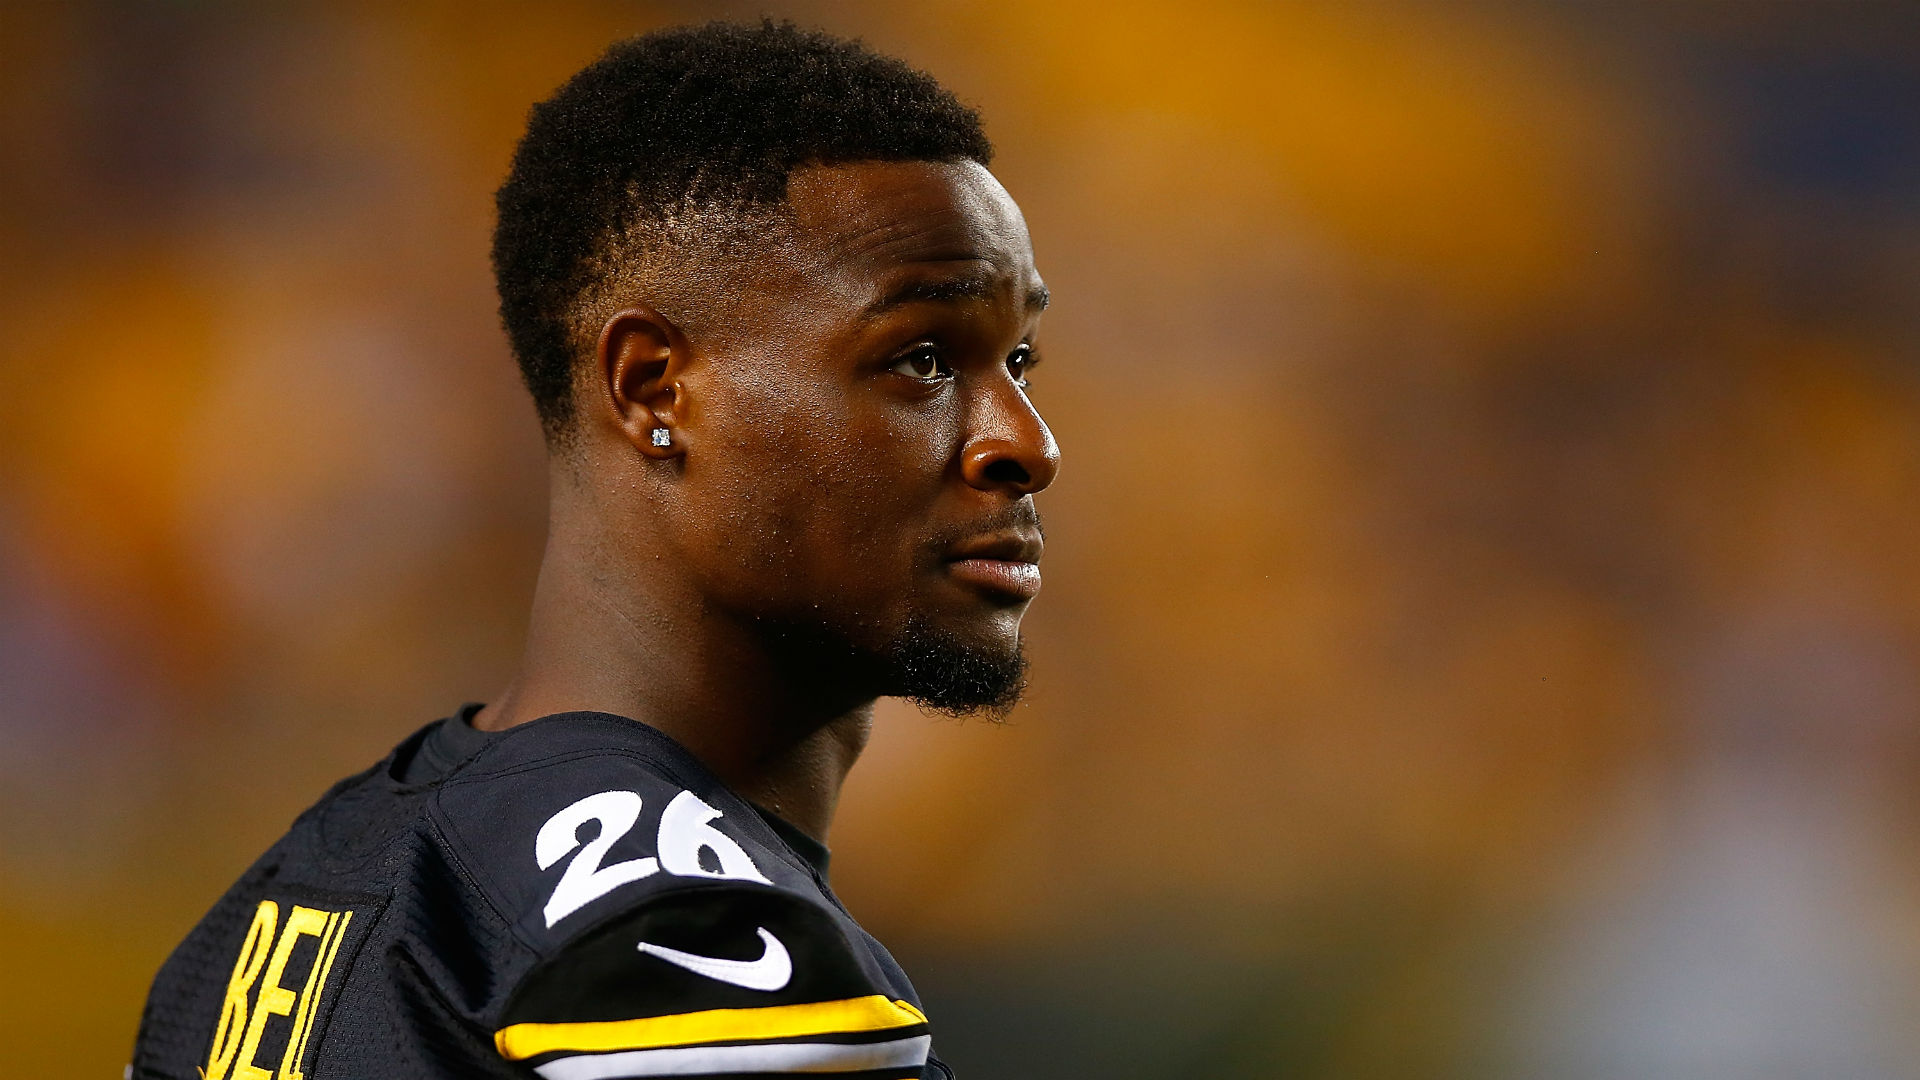 Pittsburgh Steelers: No long-term deal for Le'Veon Bell